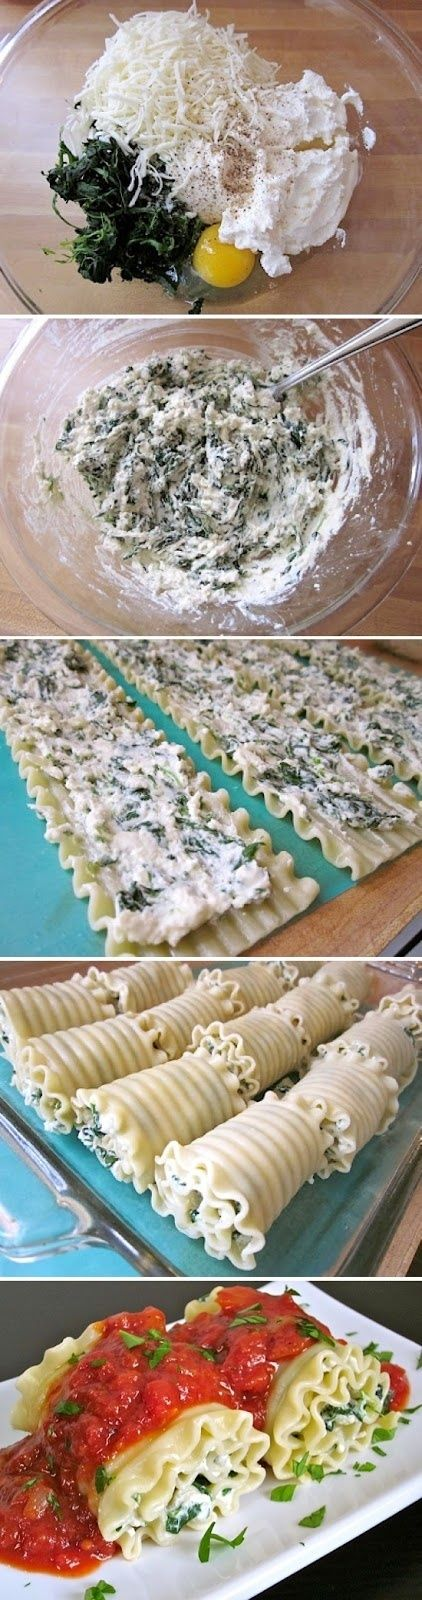 Step-by-step Spinach Lasagna Roll Ups Recipe.